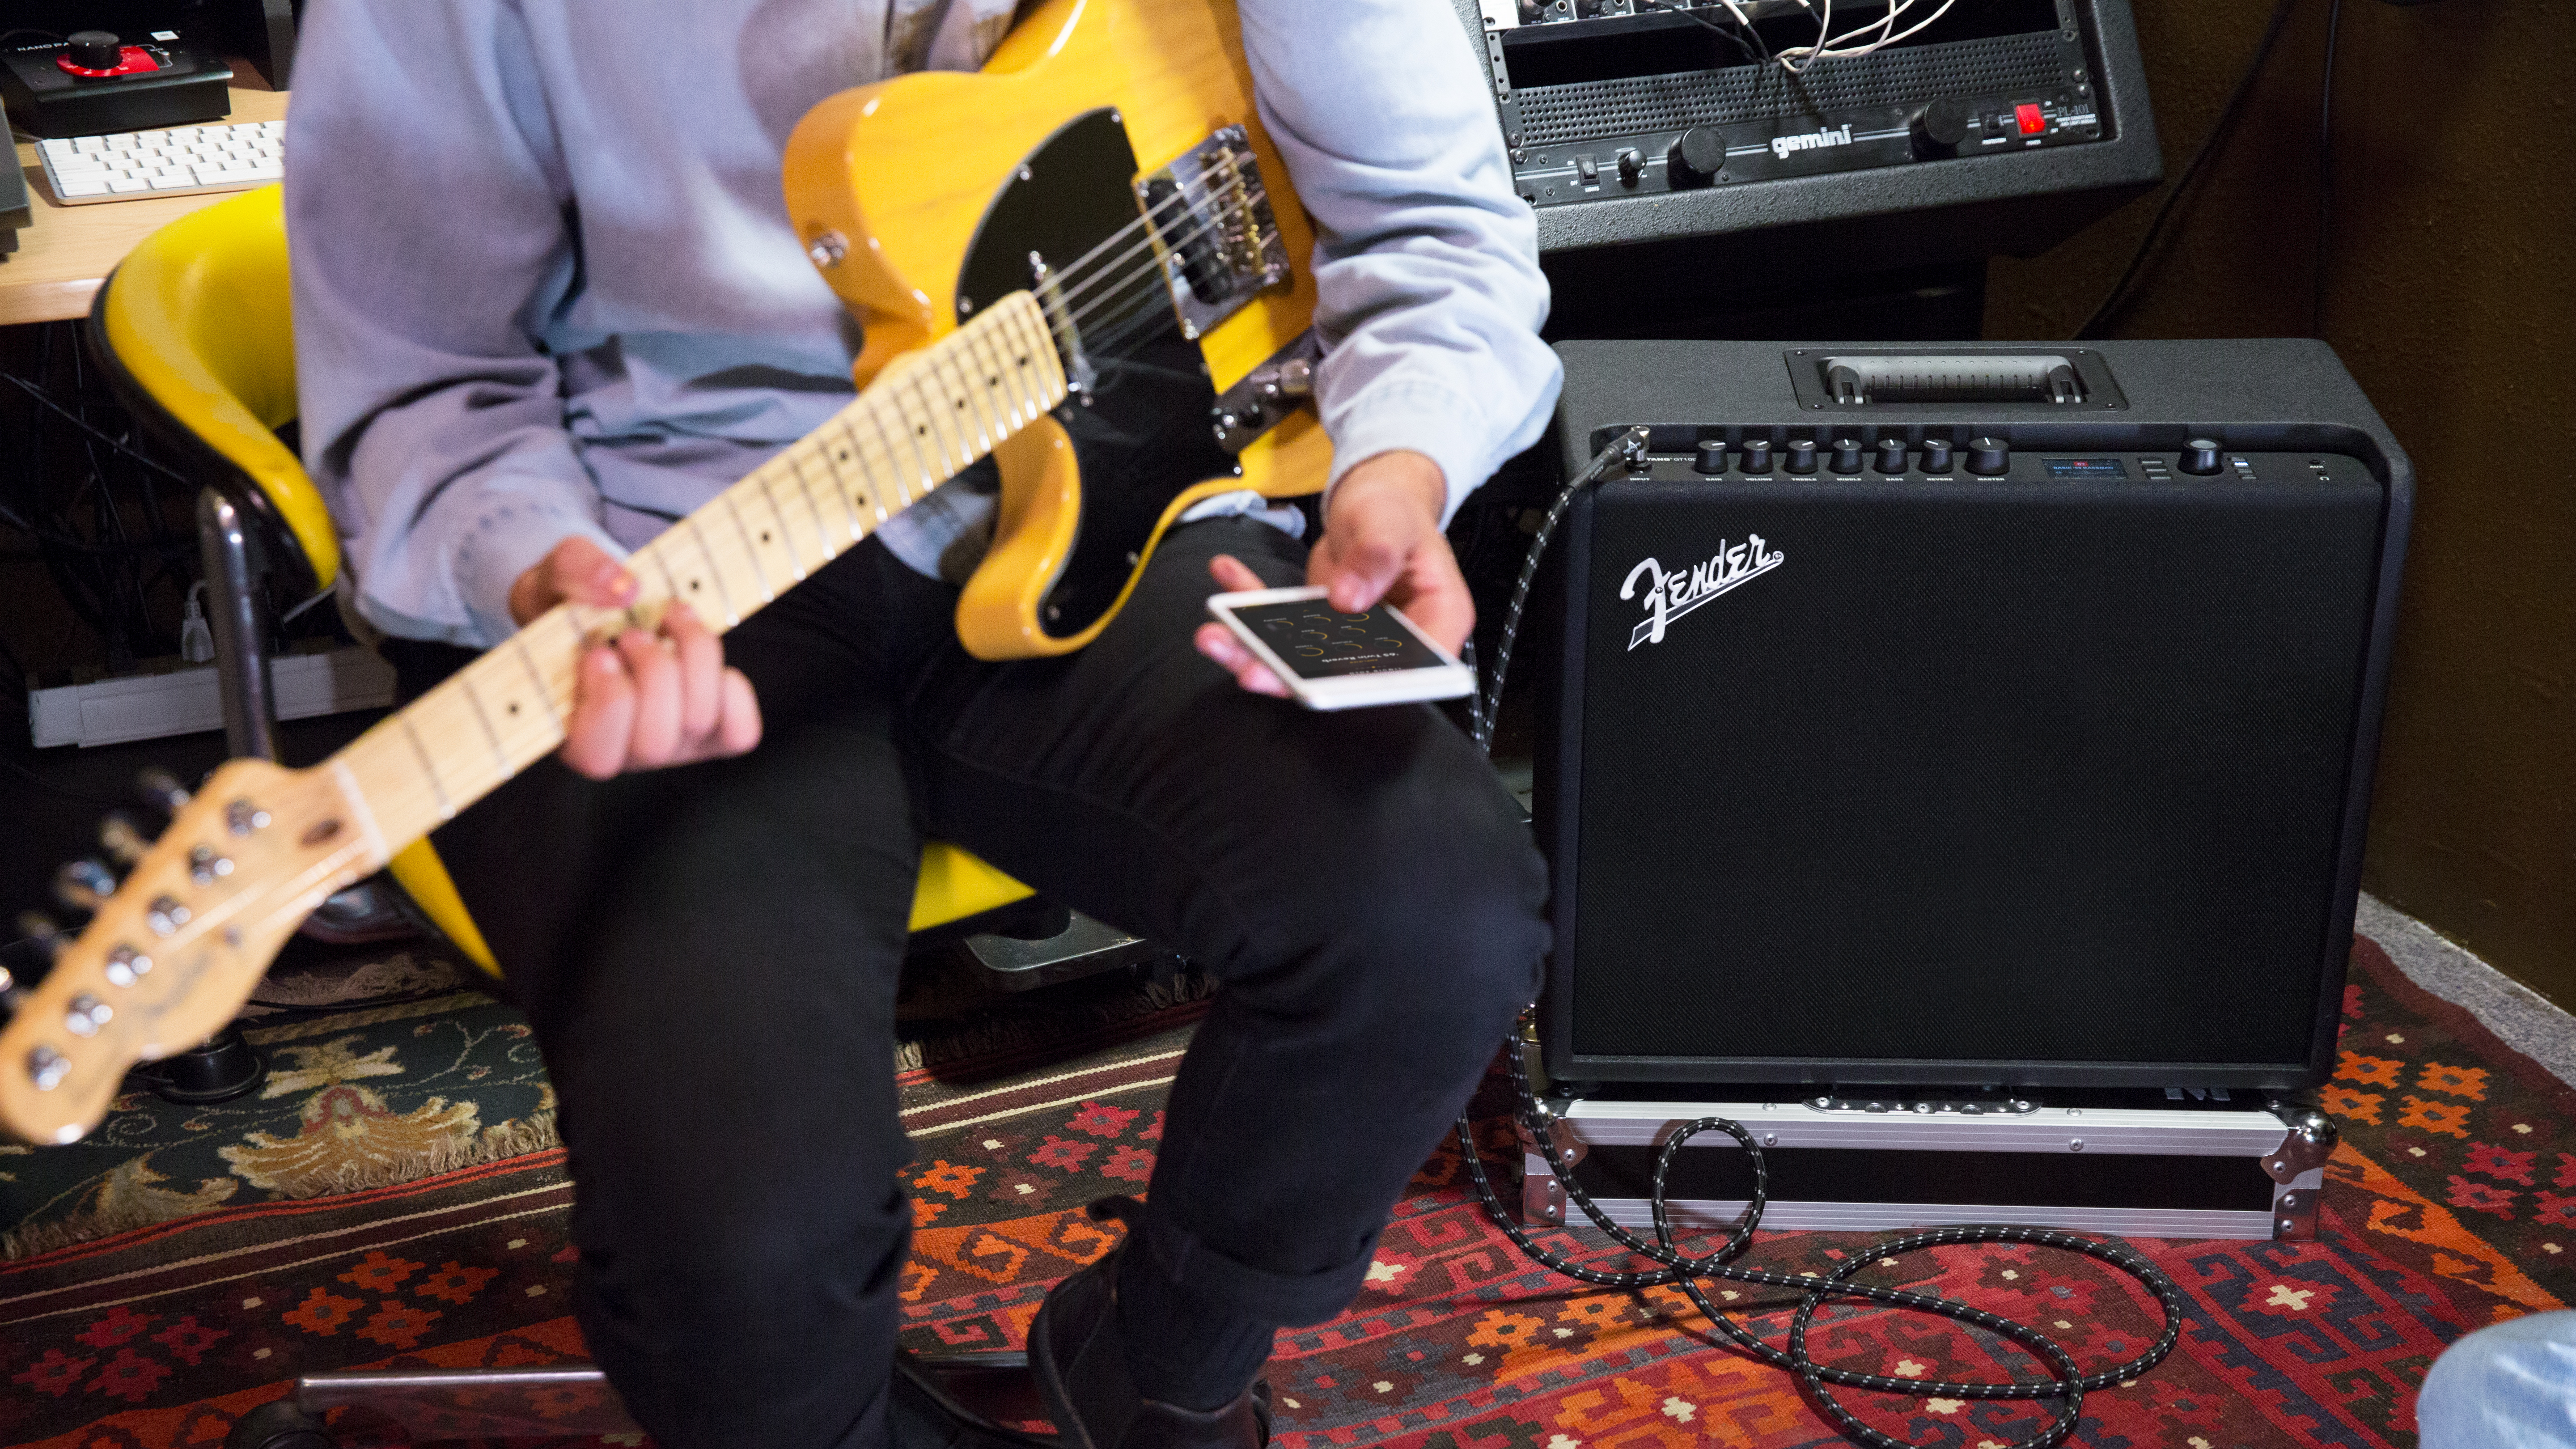 Fenders Mustang Gt Is The Tesla Of Guitar Amplifiers It Gets Fenderr Forums O View Topic Strat Tone Control For Every Pickup Better Over Time Quartz